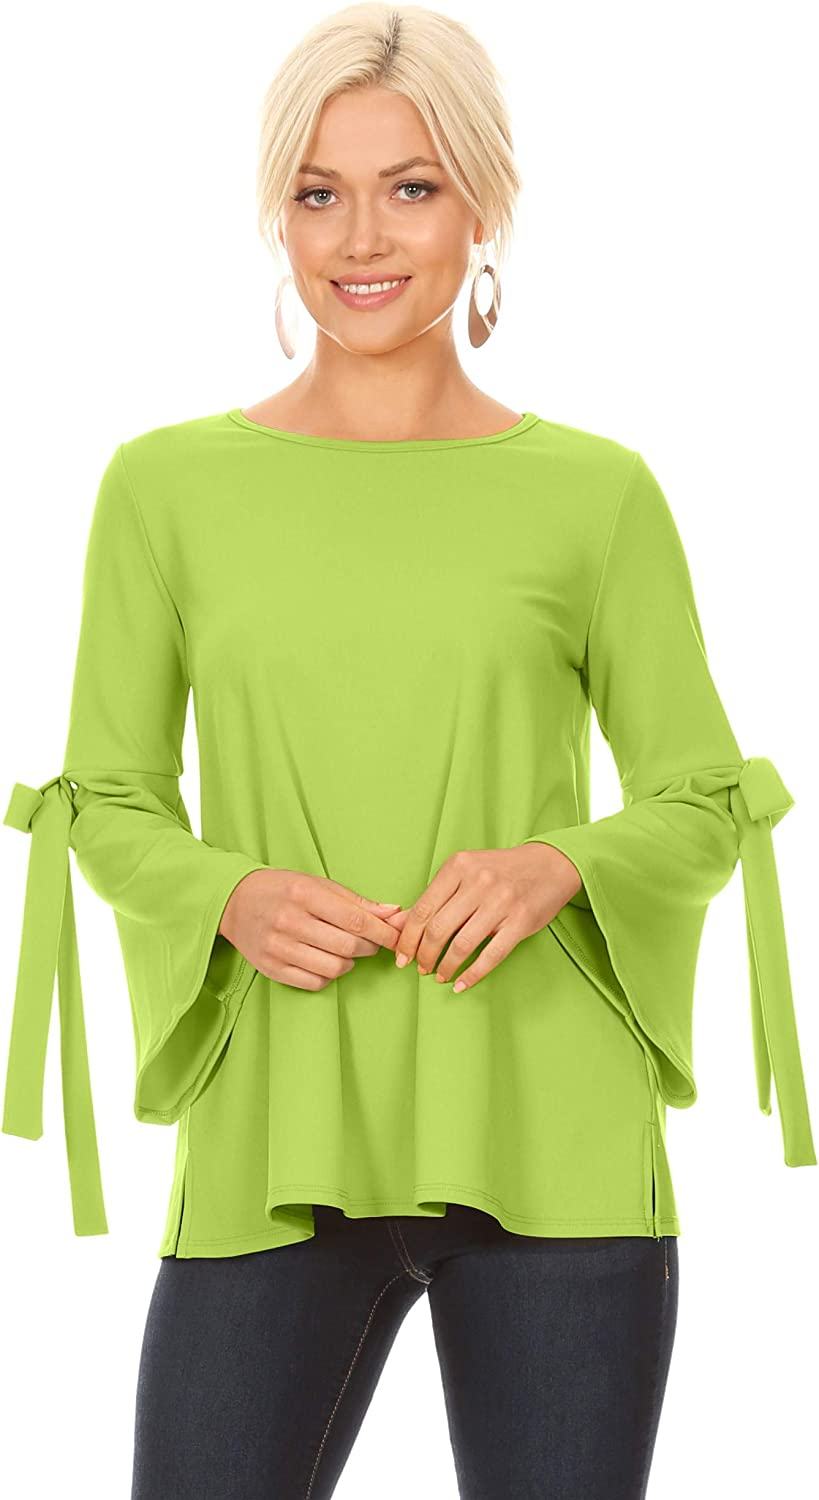 Flowy Dressy Tops for Women with Bow Sleeves Reg and Plus Size